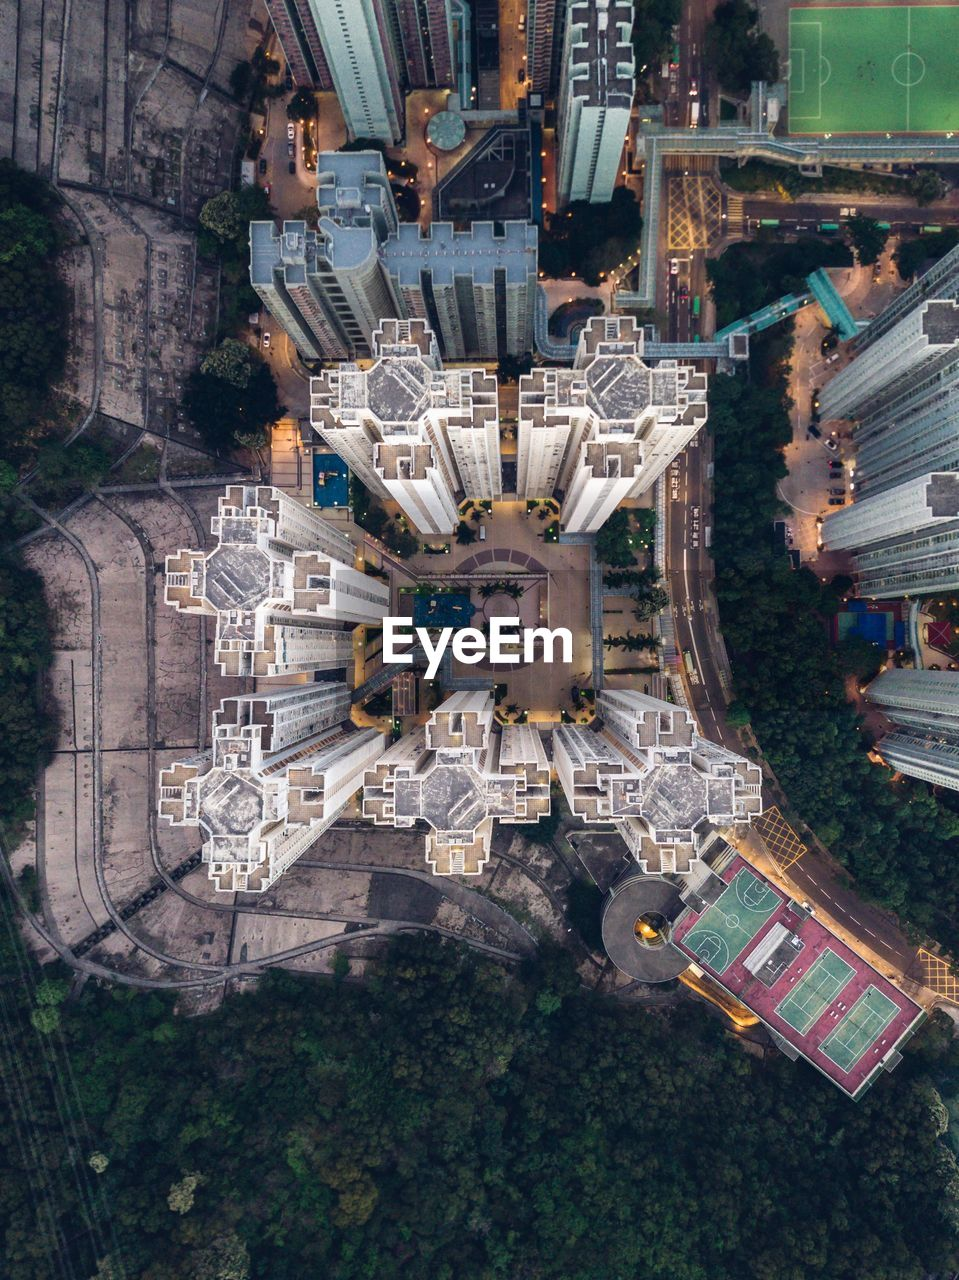 architecture, city, building exterior, built structure, cityscape, building, high angle view, aerial view, travel destinations, directly above, outdoors, nature, day, tree, transportation, no people, digital composite, mode of transportation, town, office building exterior, skyscraper